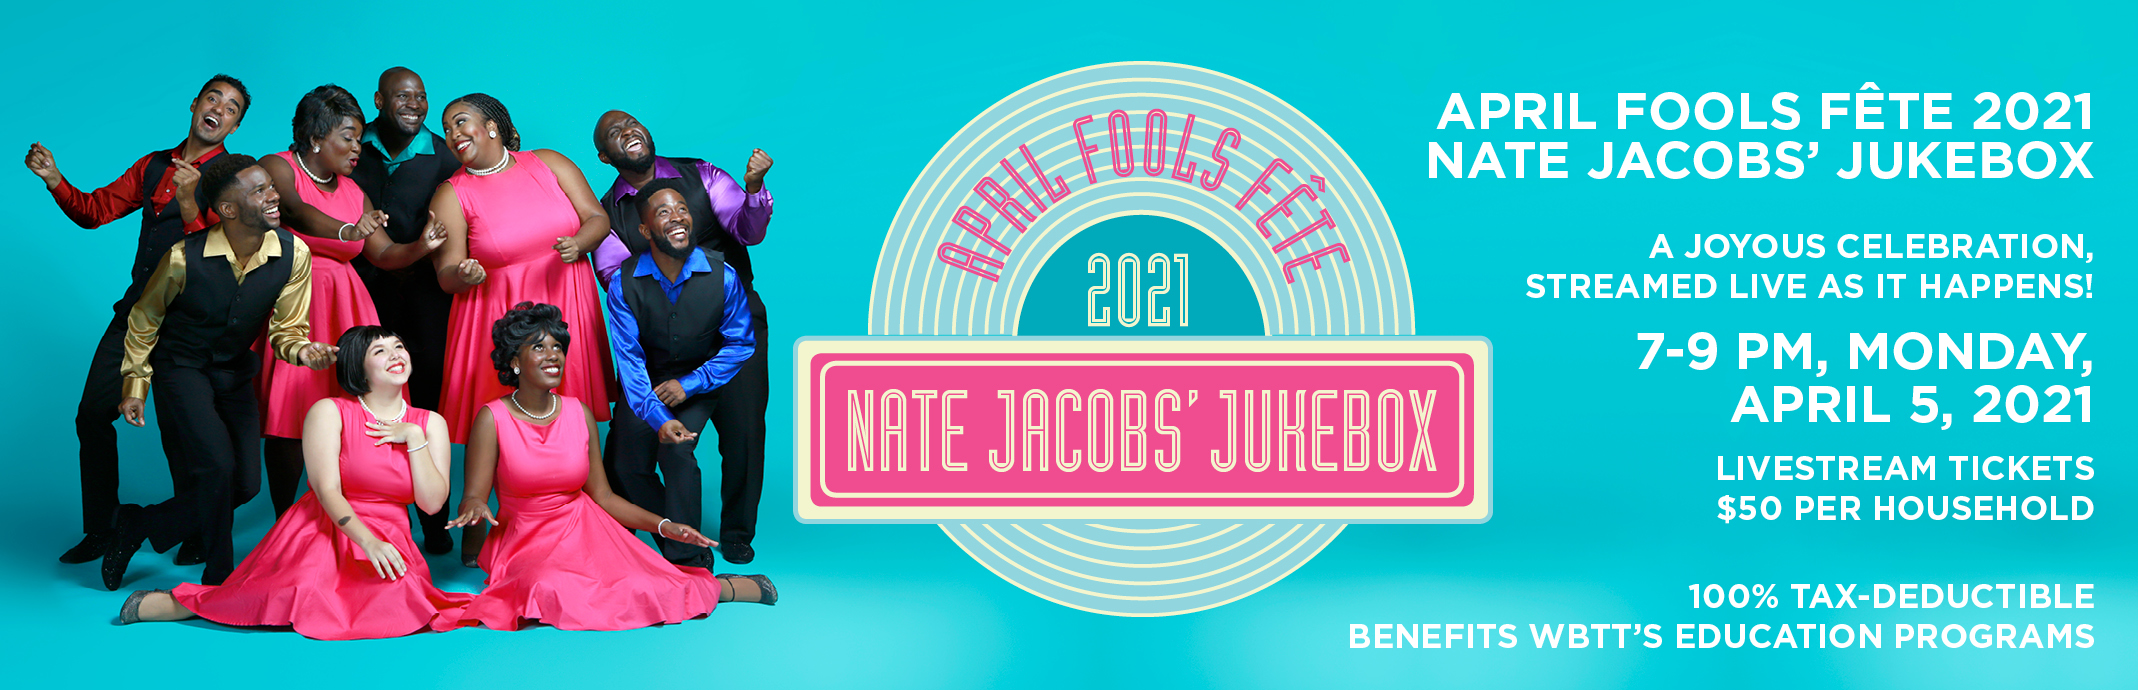 April Fools Fete, Nate Jacob